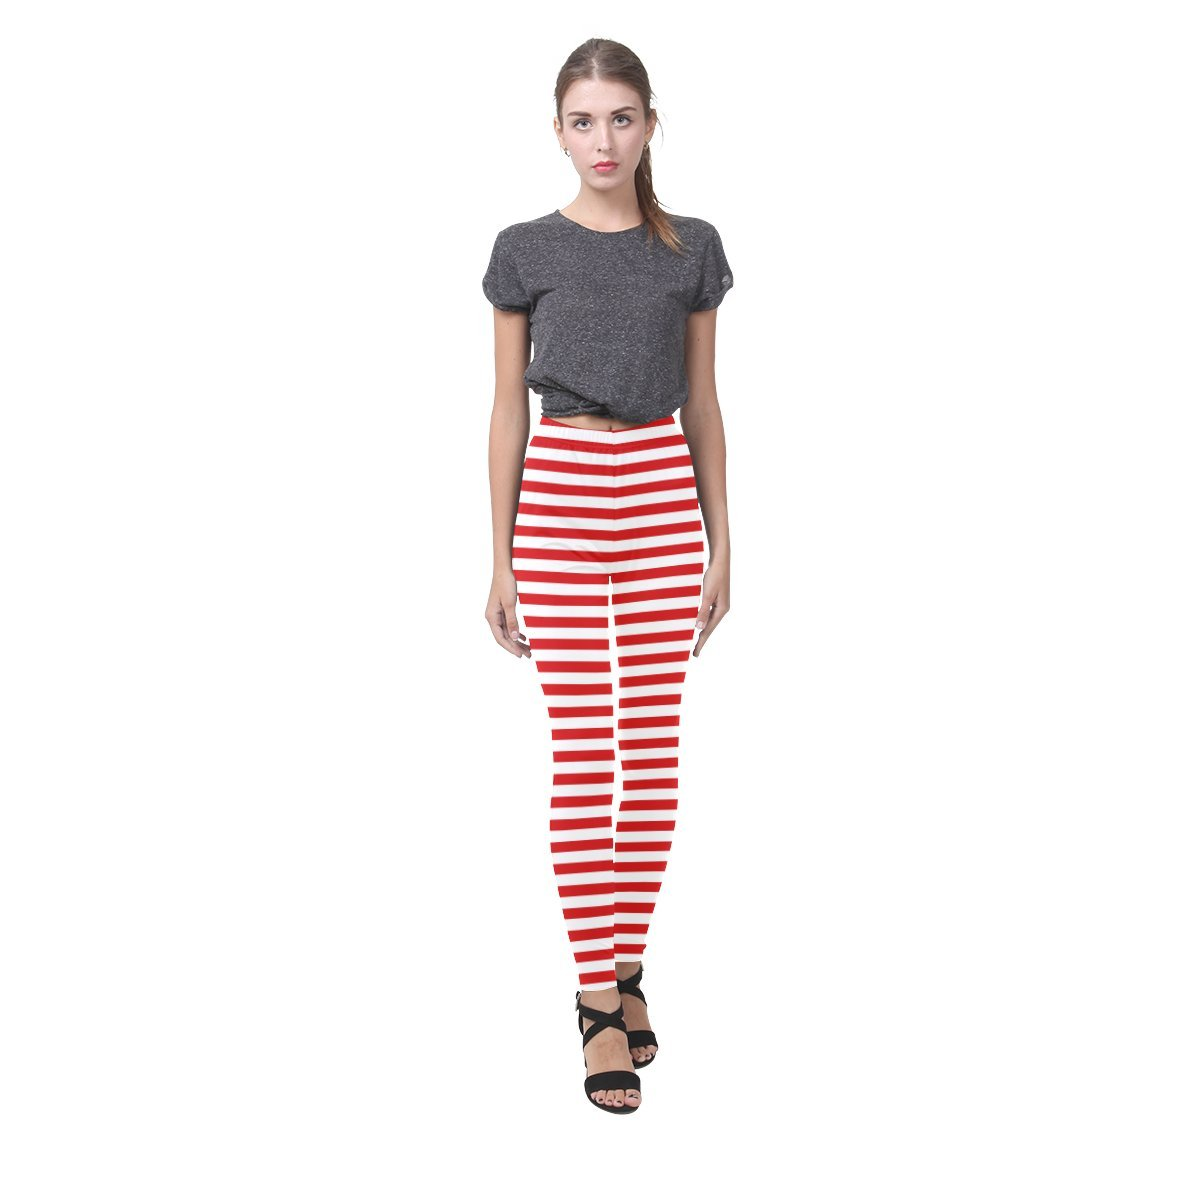 Honey Day House Red White Stripes Fashion All Over Printing Leggings Women